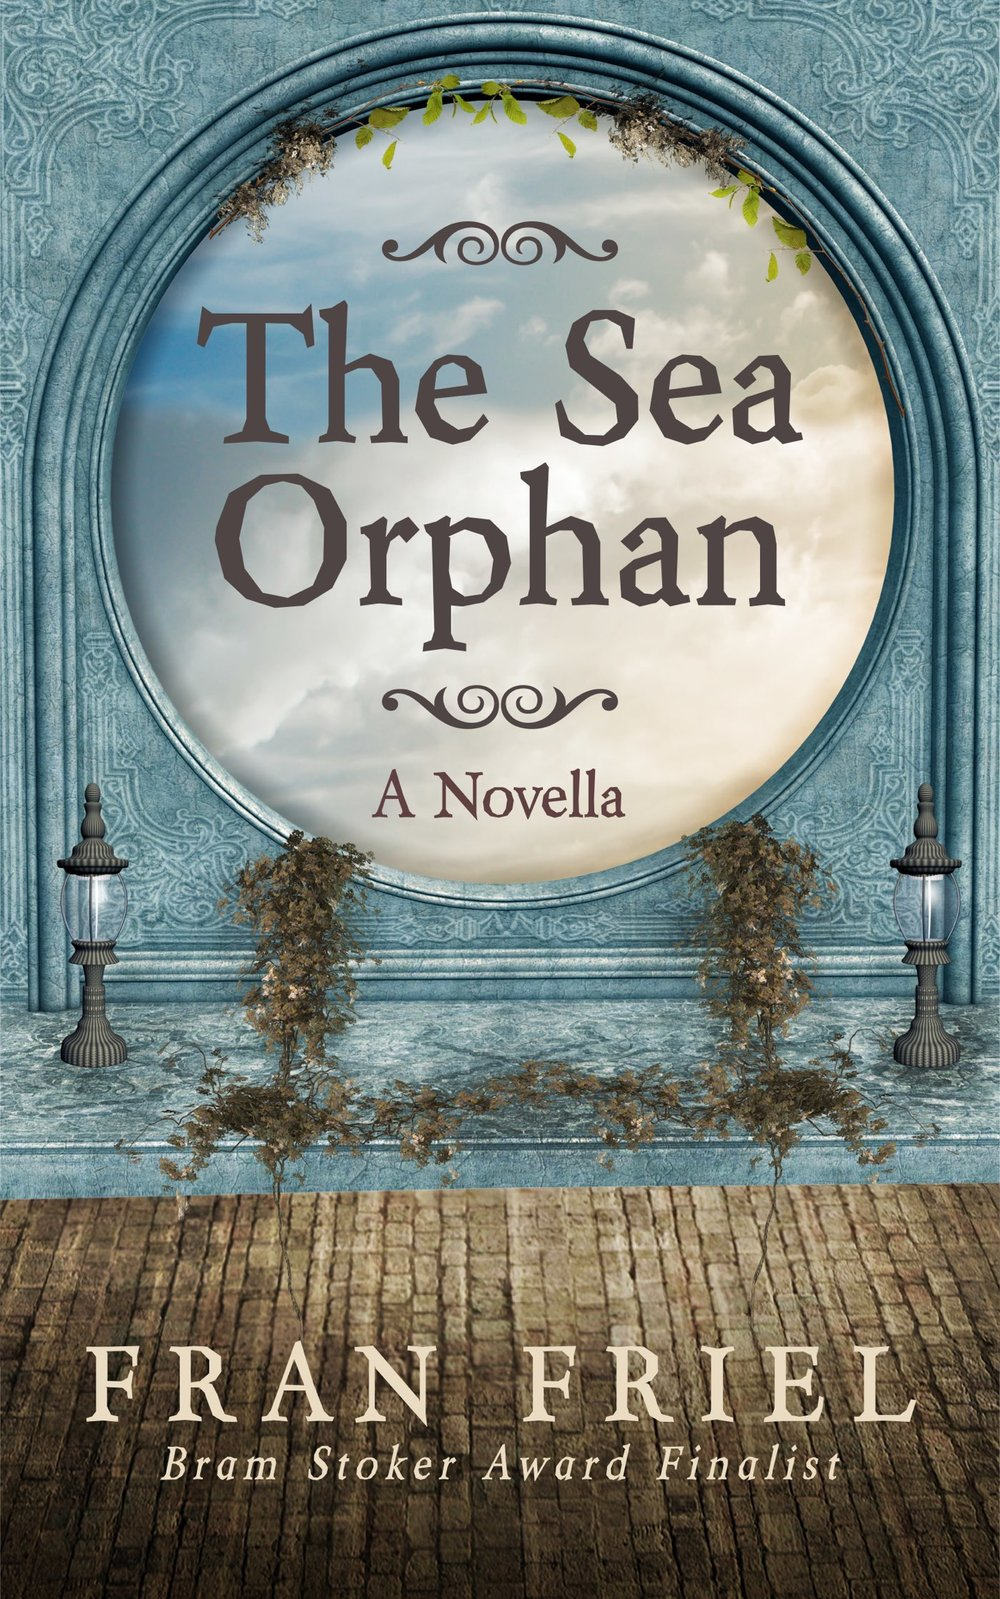 The-Sea-Orphan-Generic copy.jpg